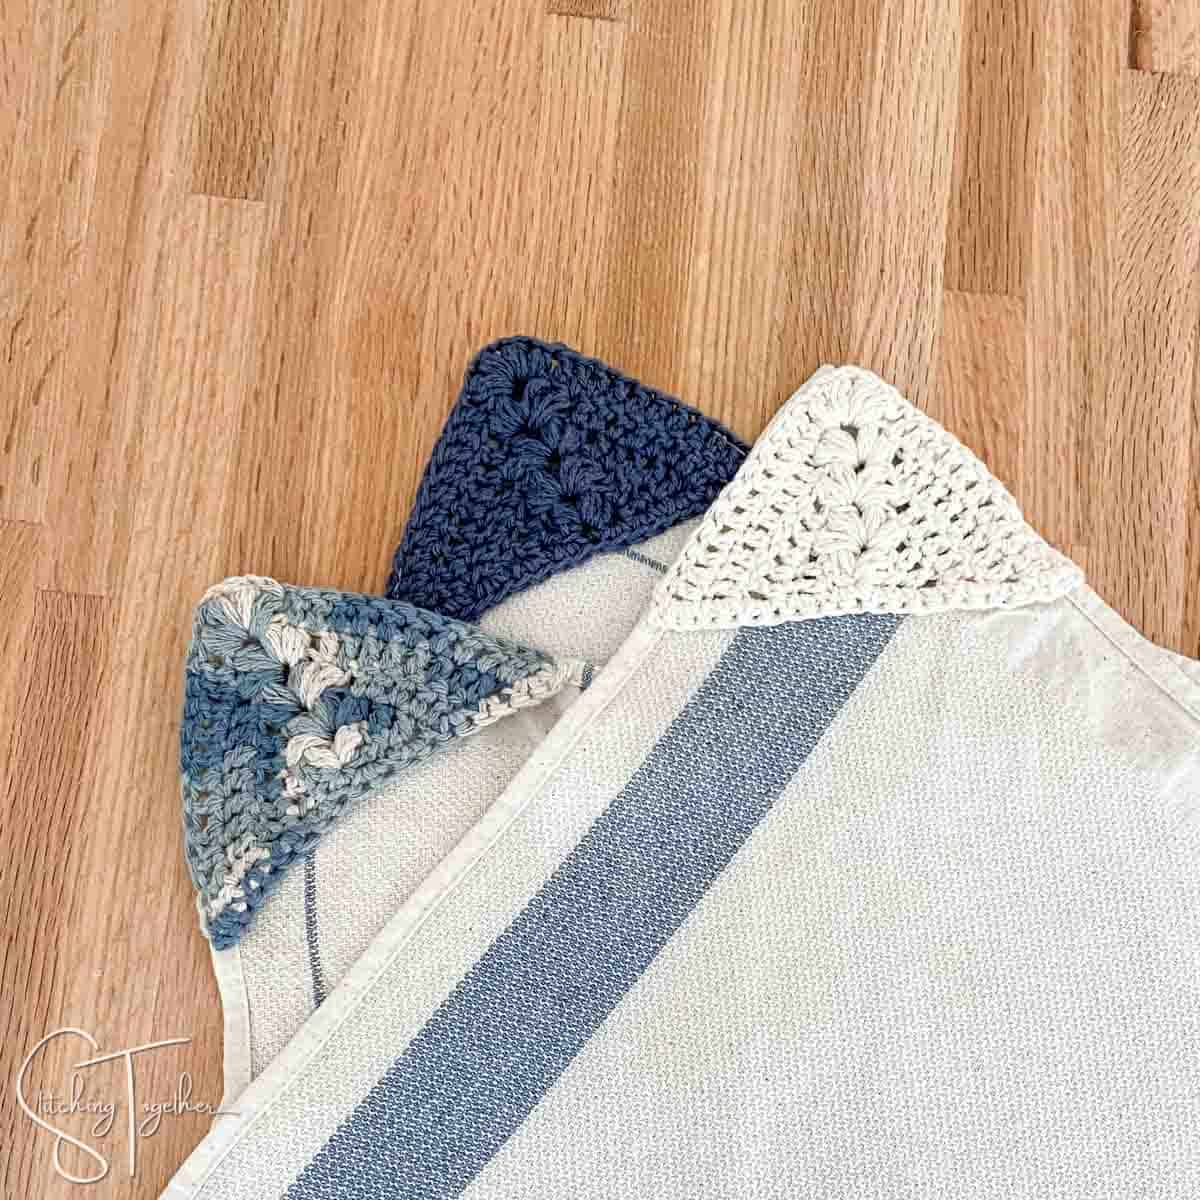 crochet kitchen towels with crochettowel hangers sewn in the corner